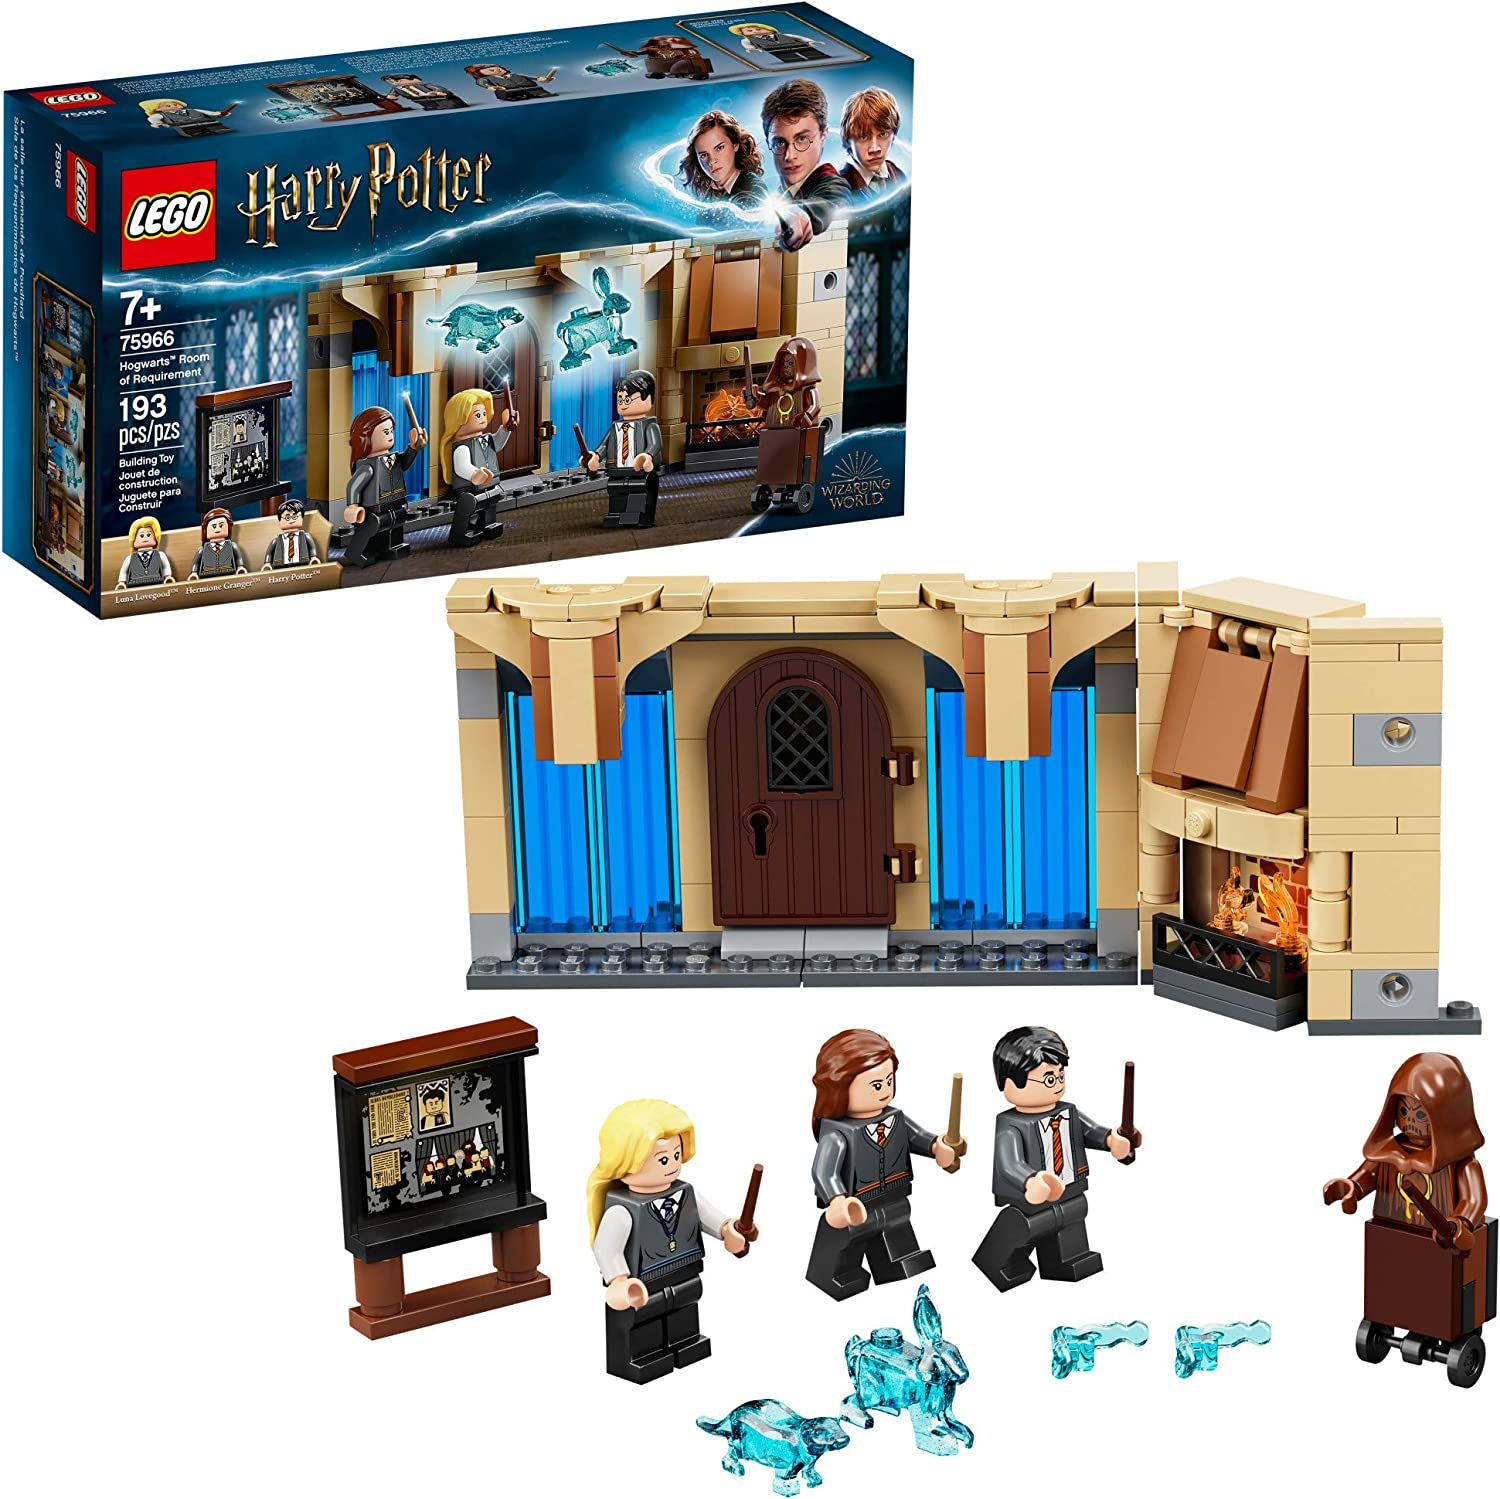 Lego Harry Potter Hogwarts Room Of Requirement 75966 Dumbledore S Army Gift Idea From Harry Potter And The Order Of The Phoenix New 2020 193 Pieces Toys Games